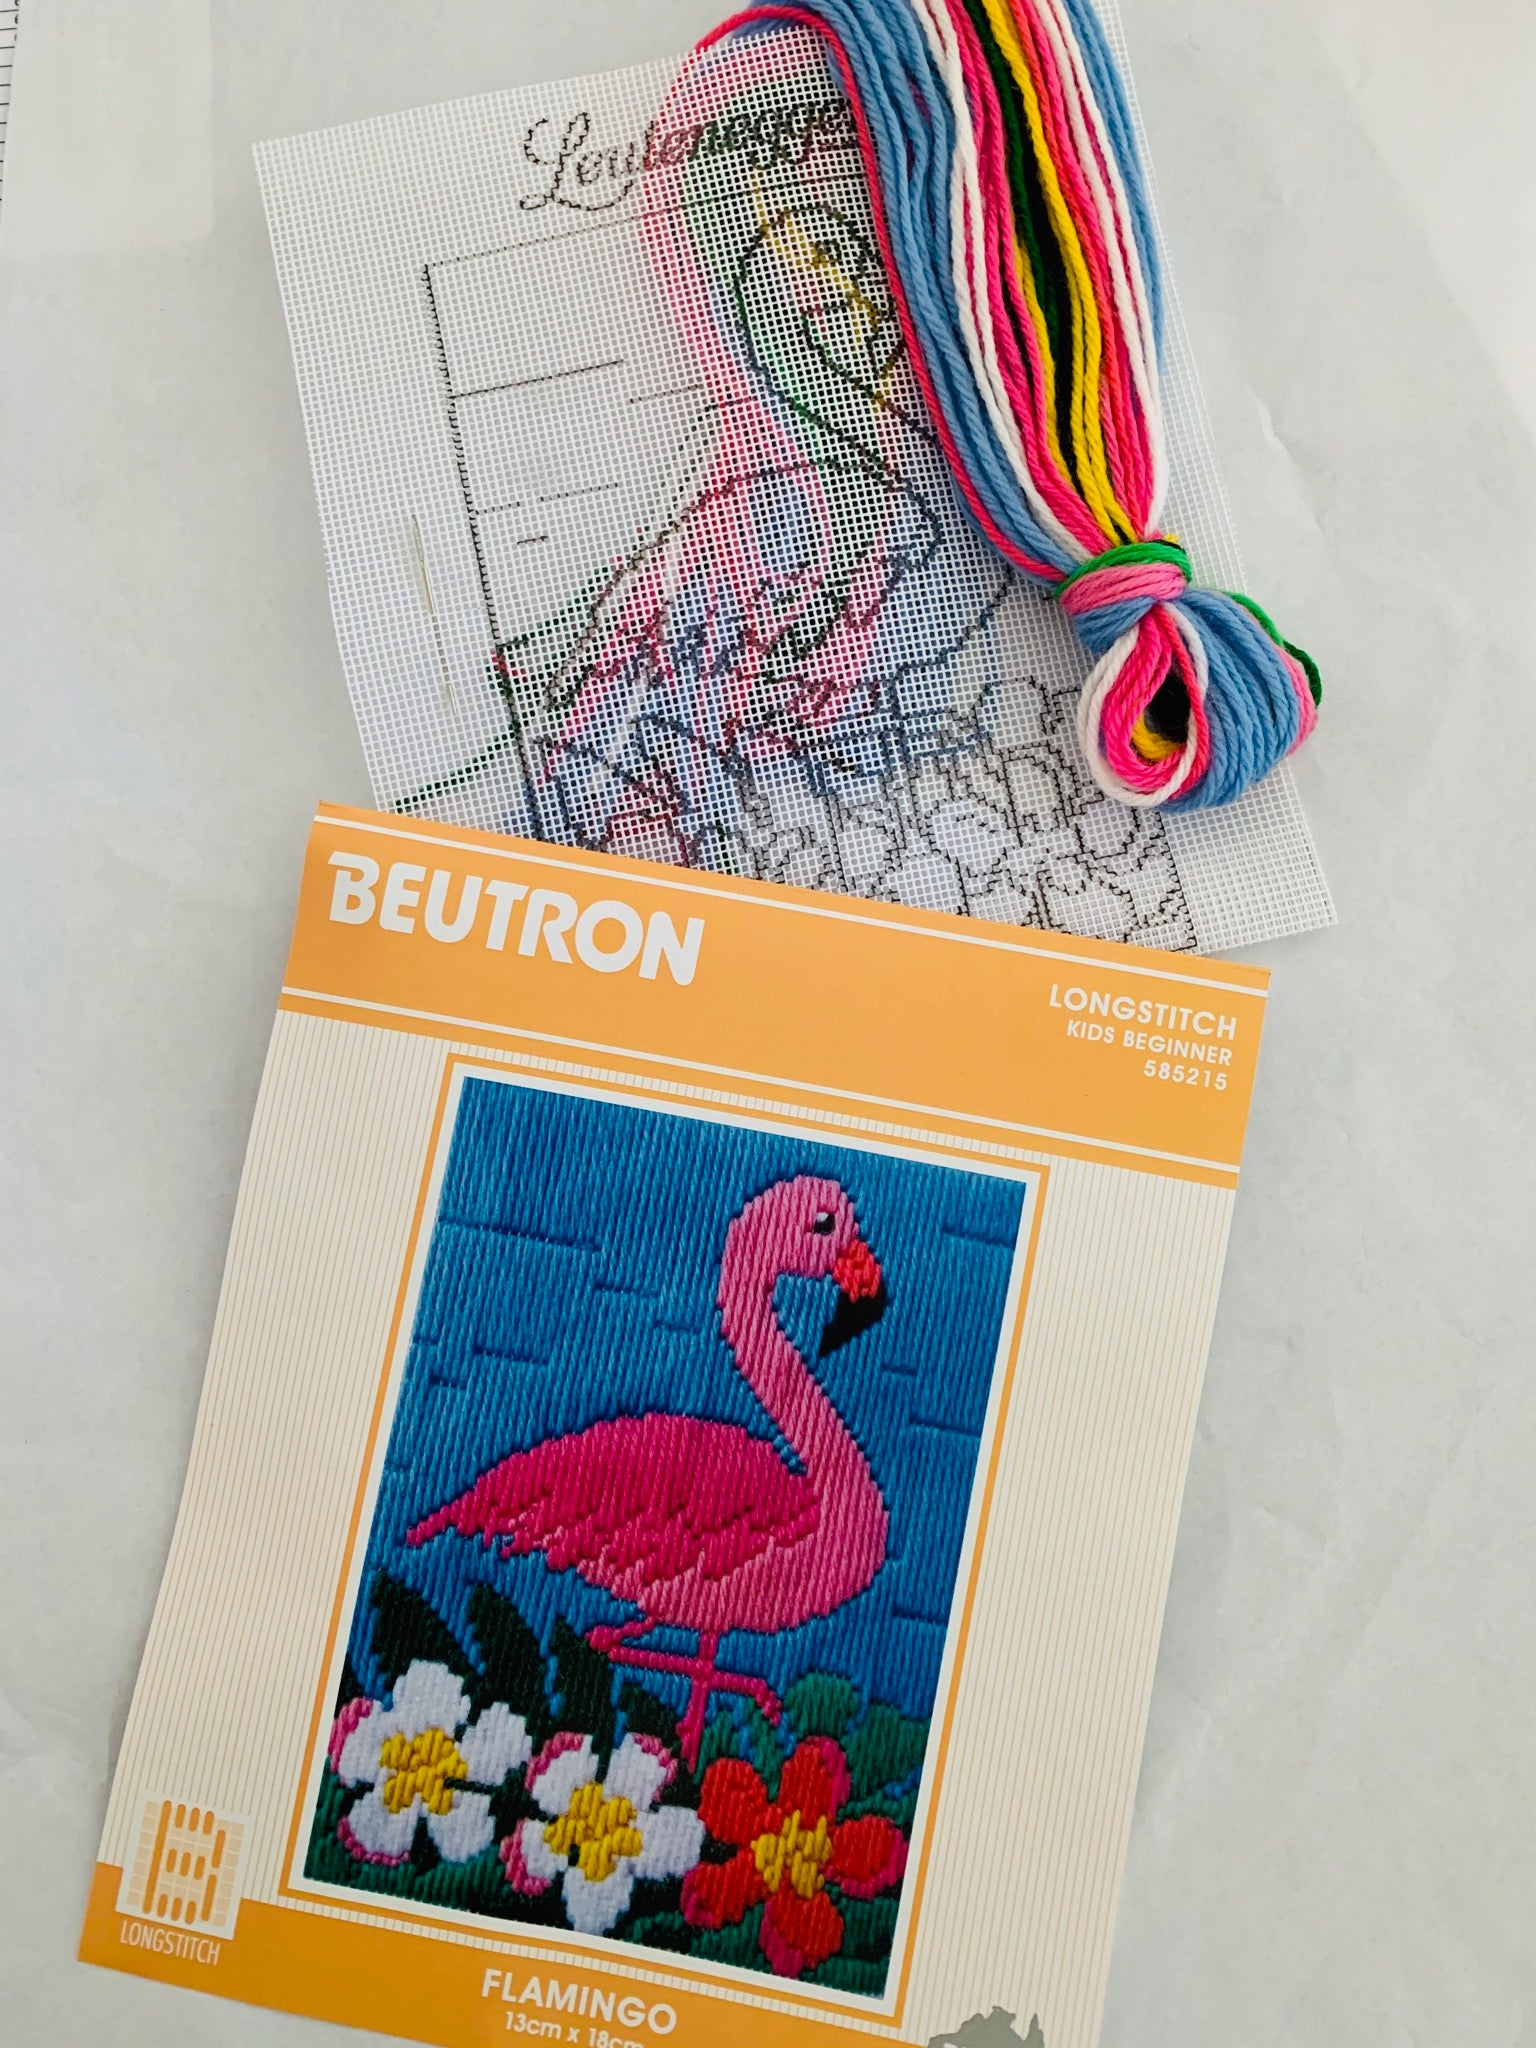 Beutron Longstitch Kids Beginner: Flamingo